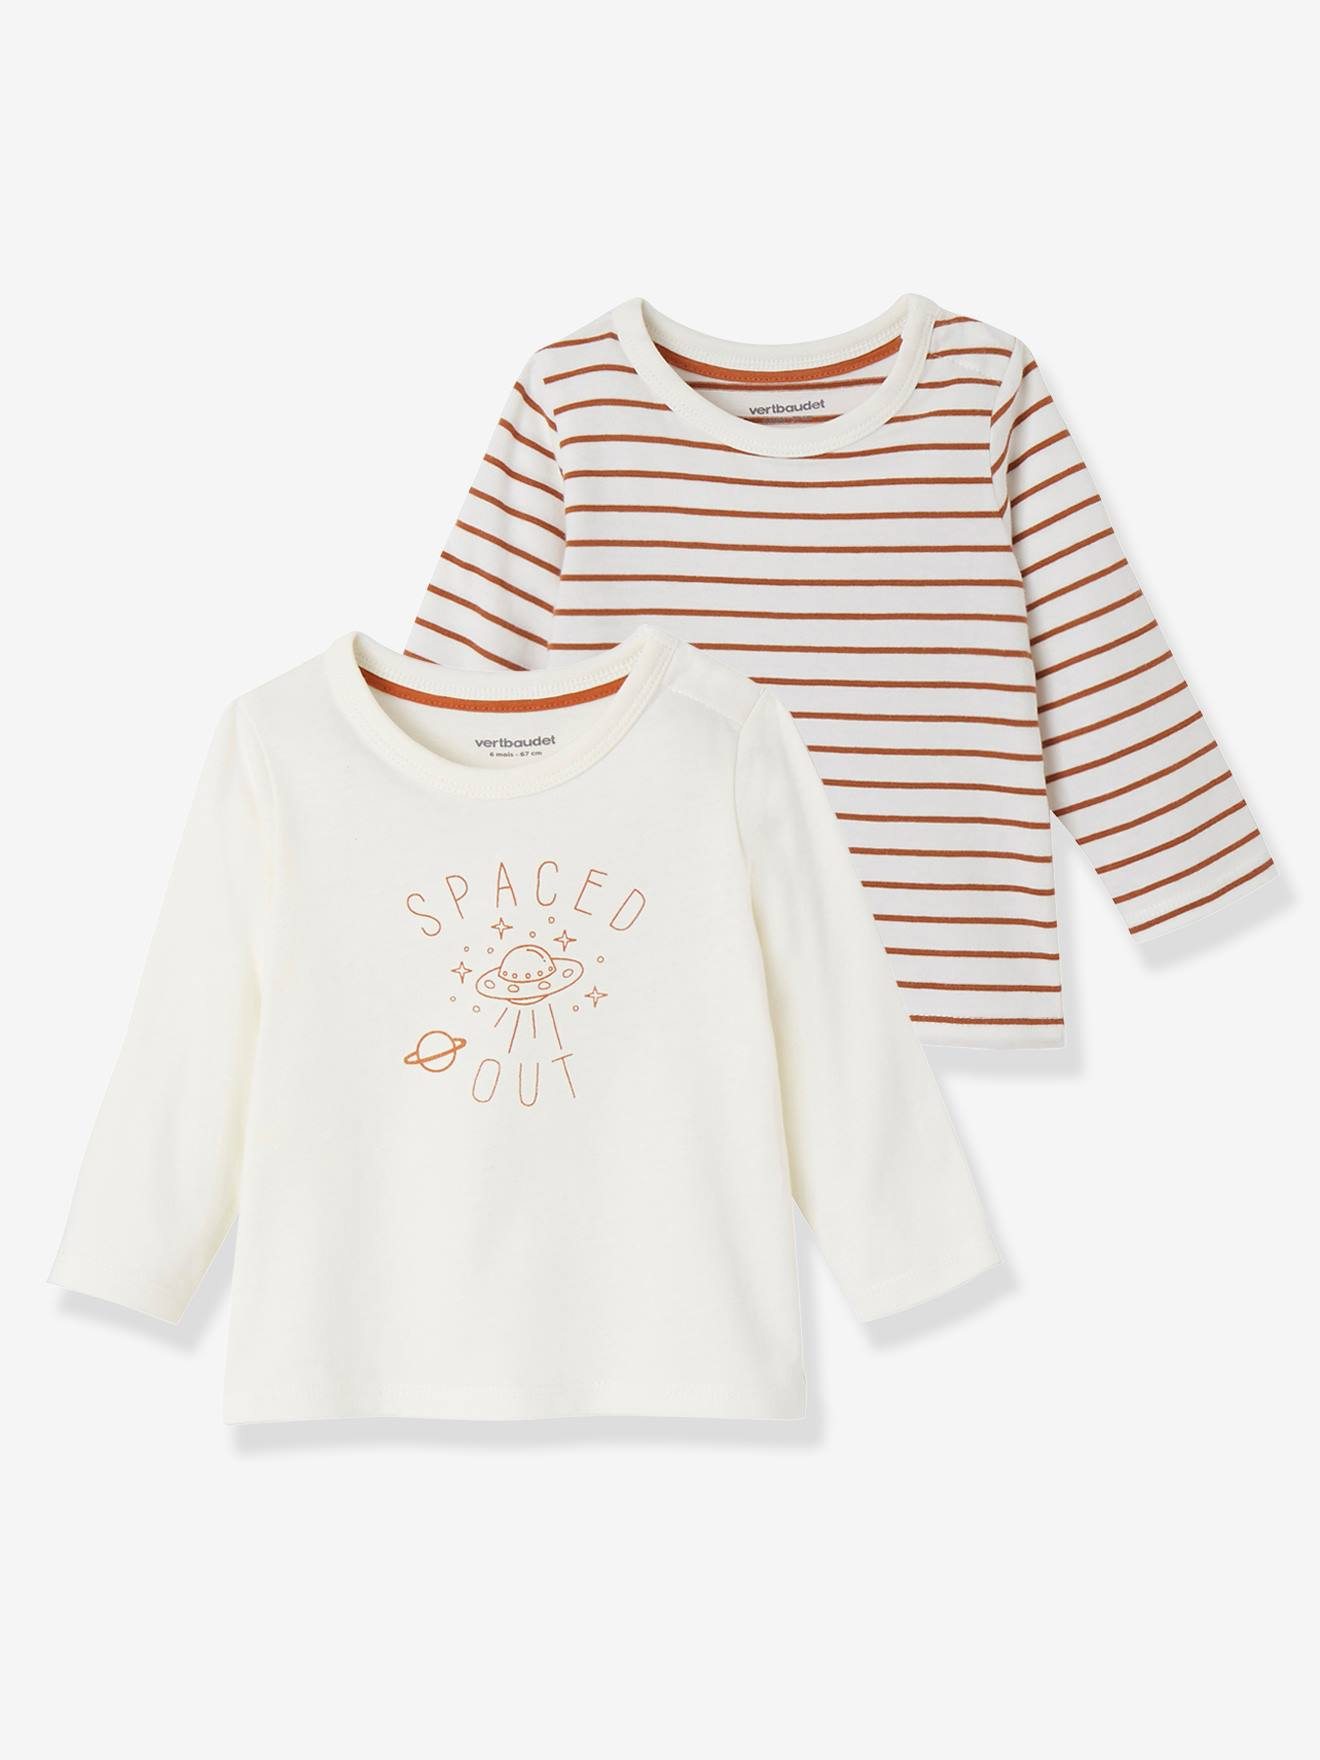 288a61aba Pack of 2 Baby Girls' Long-Sleeved T-Shirts - brown light 2 color/multicol …